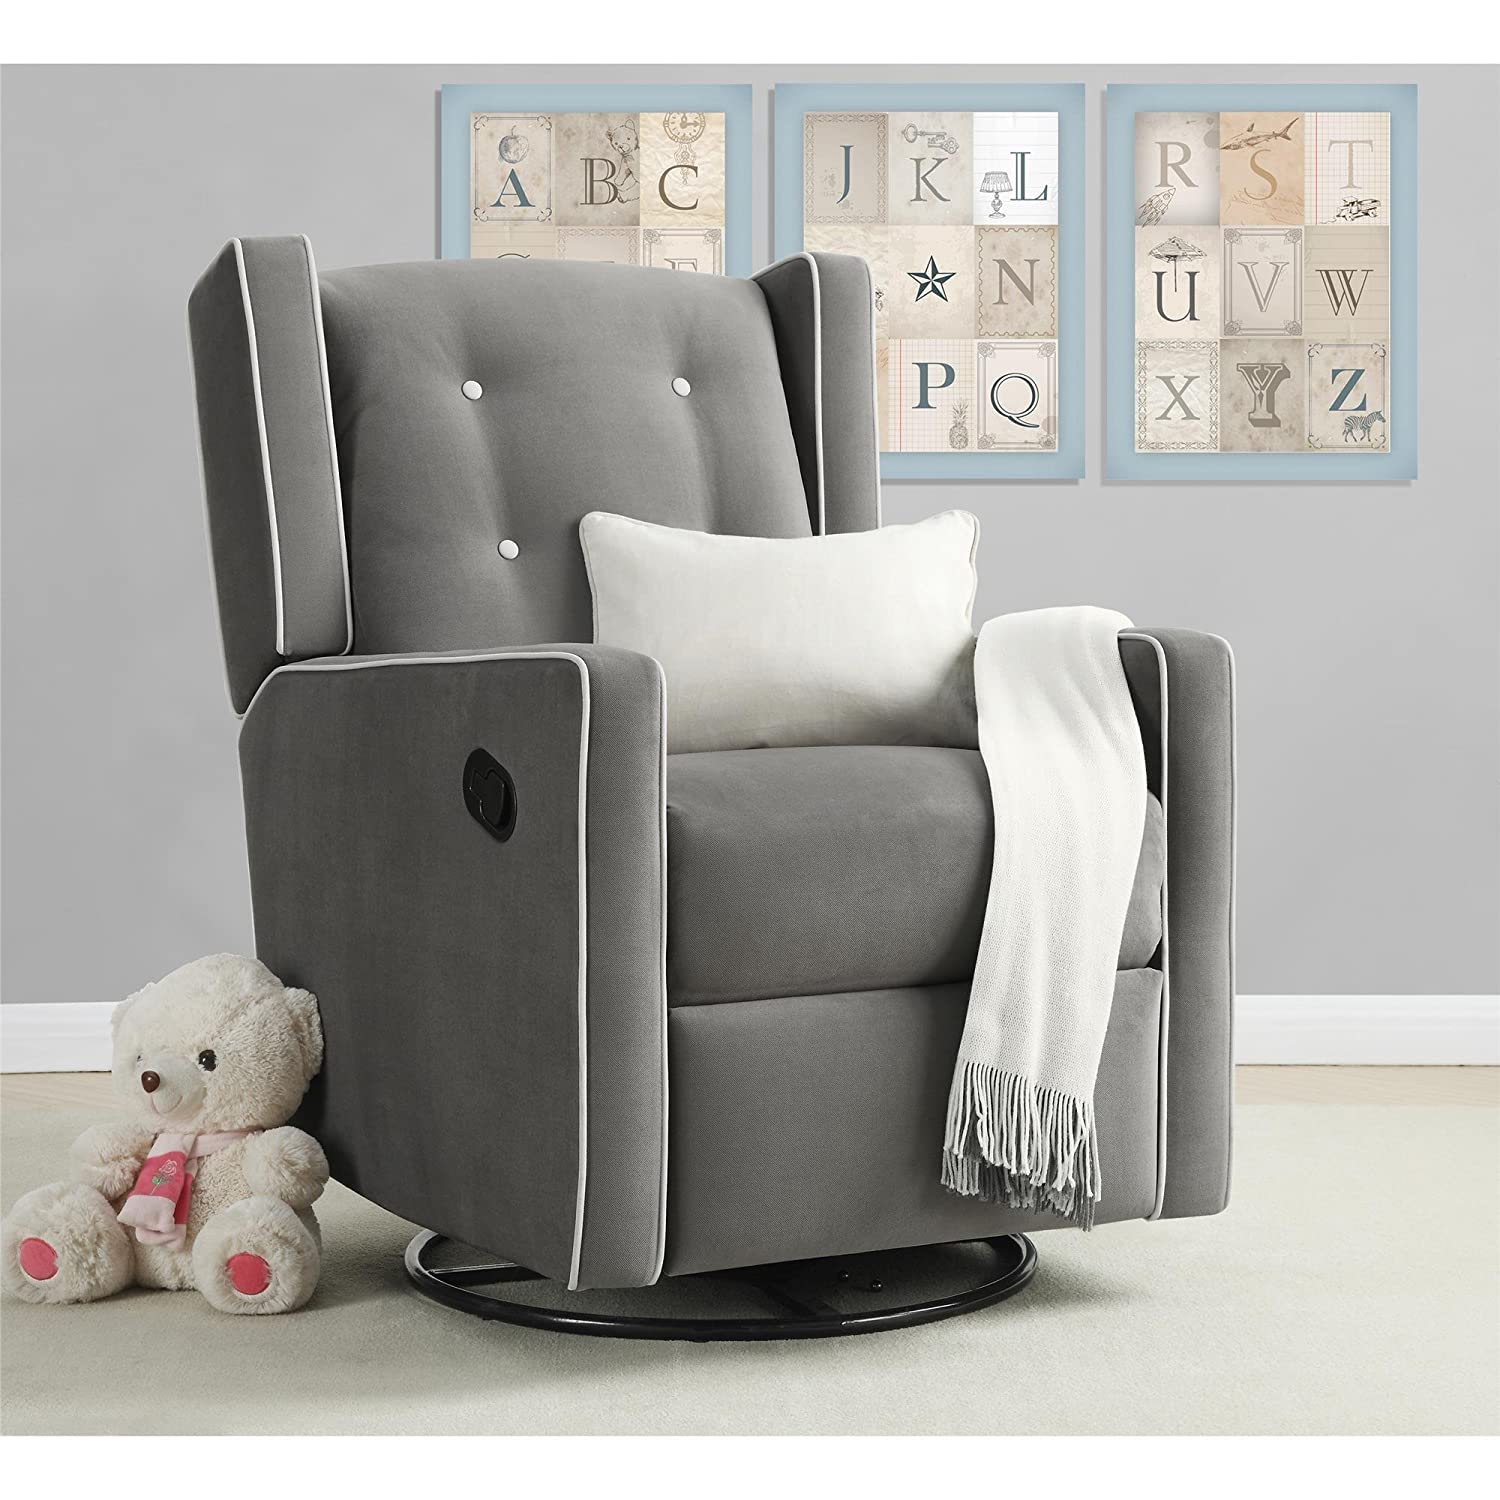 knightly is recliners the functionality dorel sourceimage smooth seating baby style combining rocker details products everston recliner chairs comfort and gray a living has solution eng glider perfect chair swivel gliding nursery